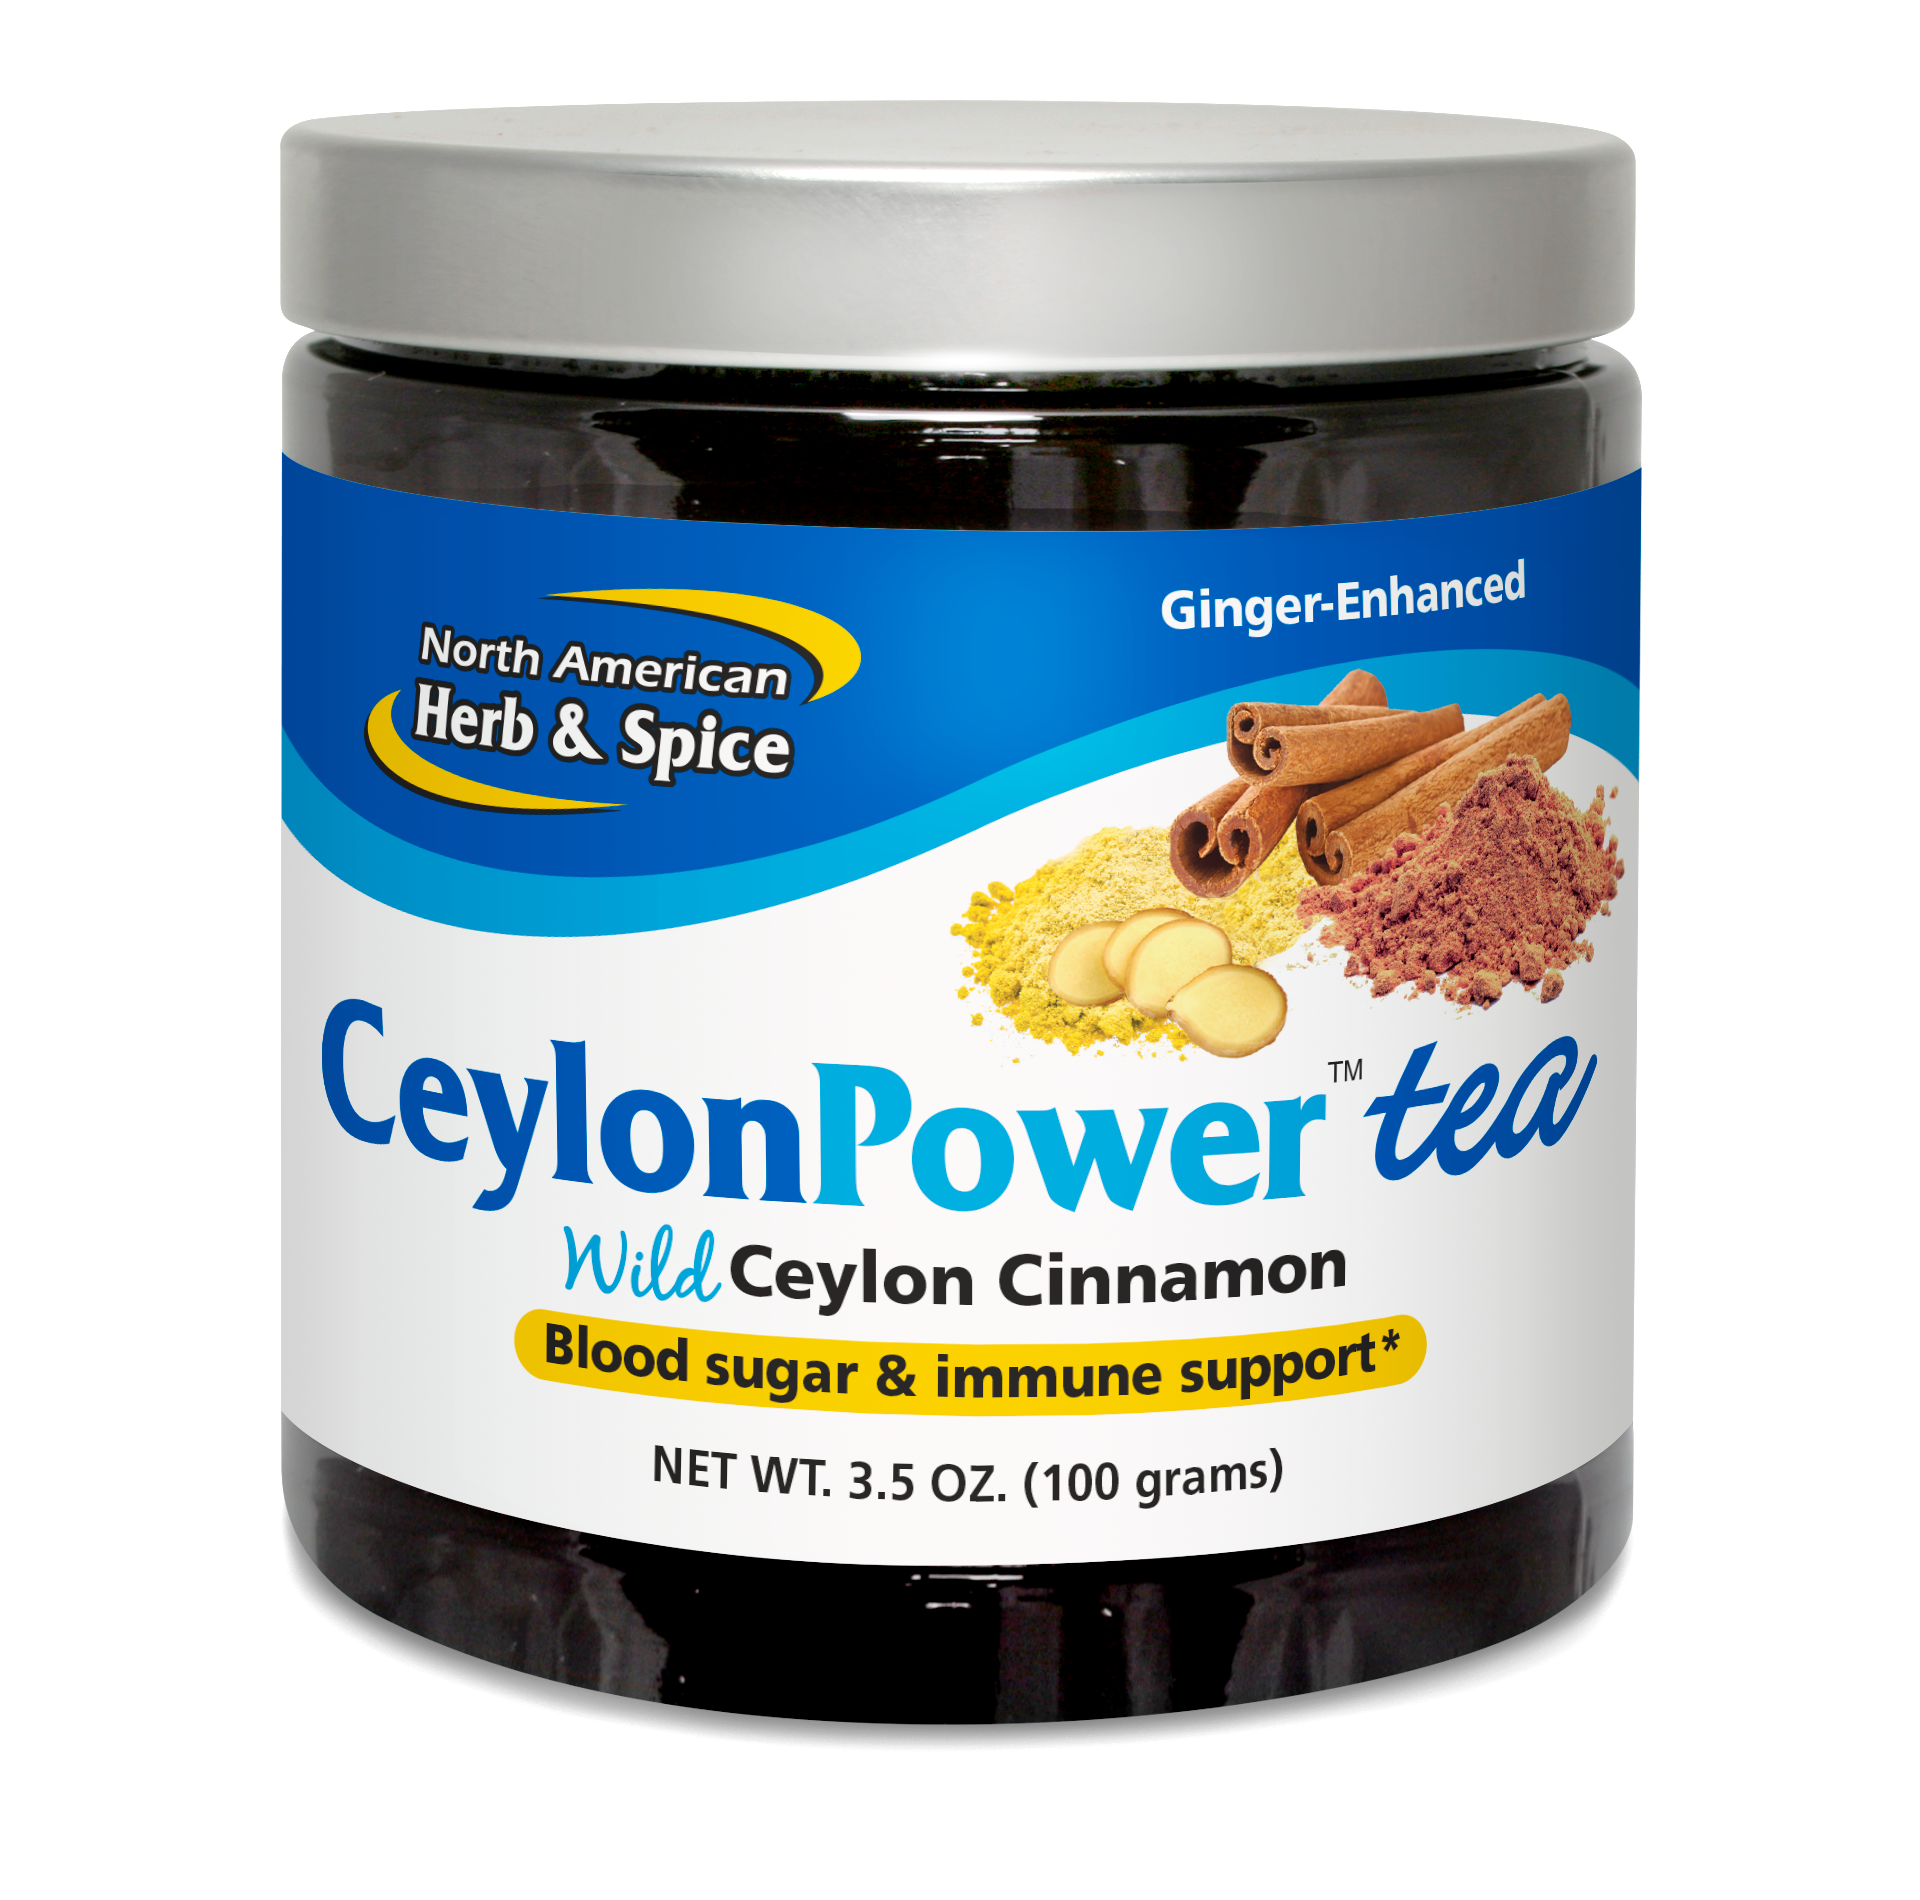 CeylonPower Tea